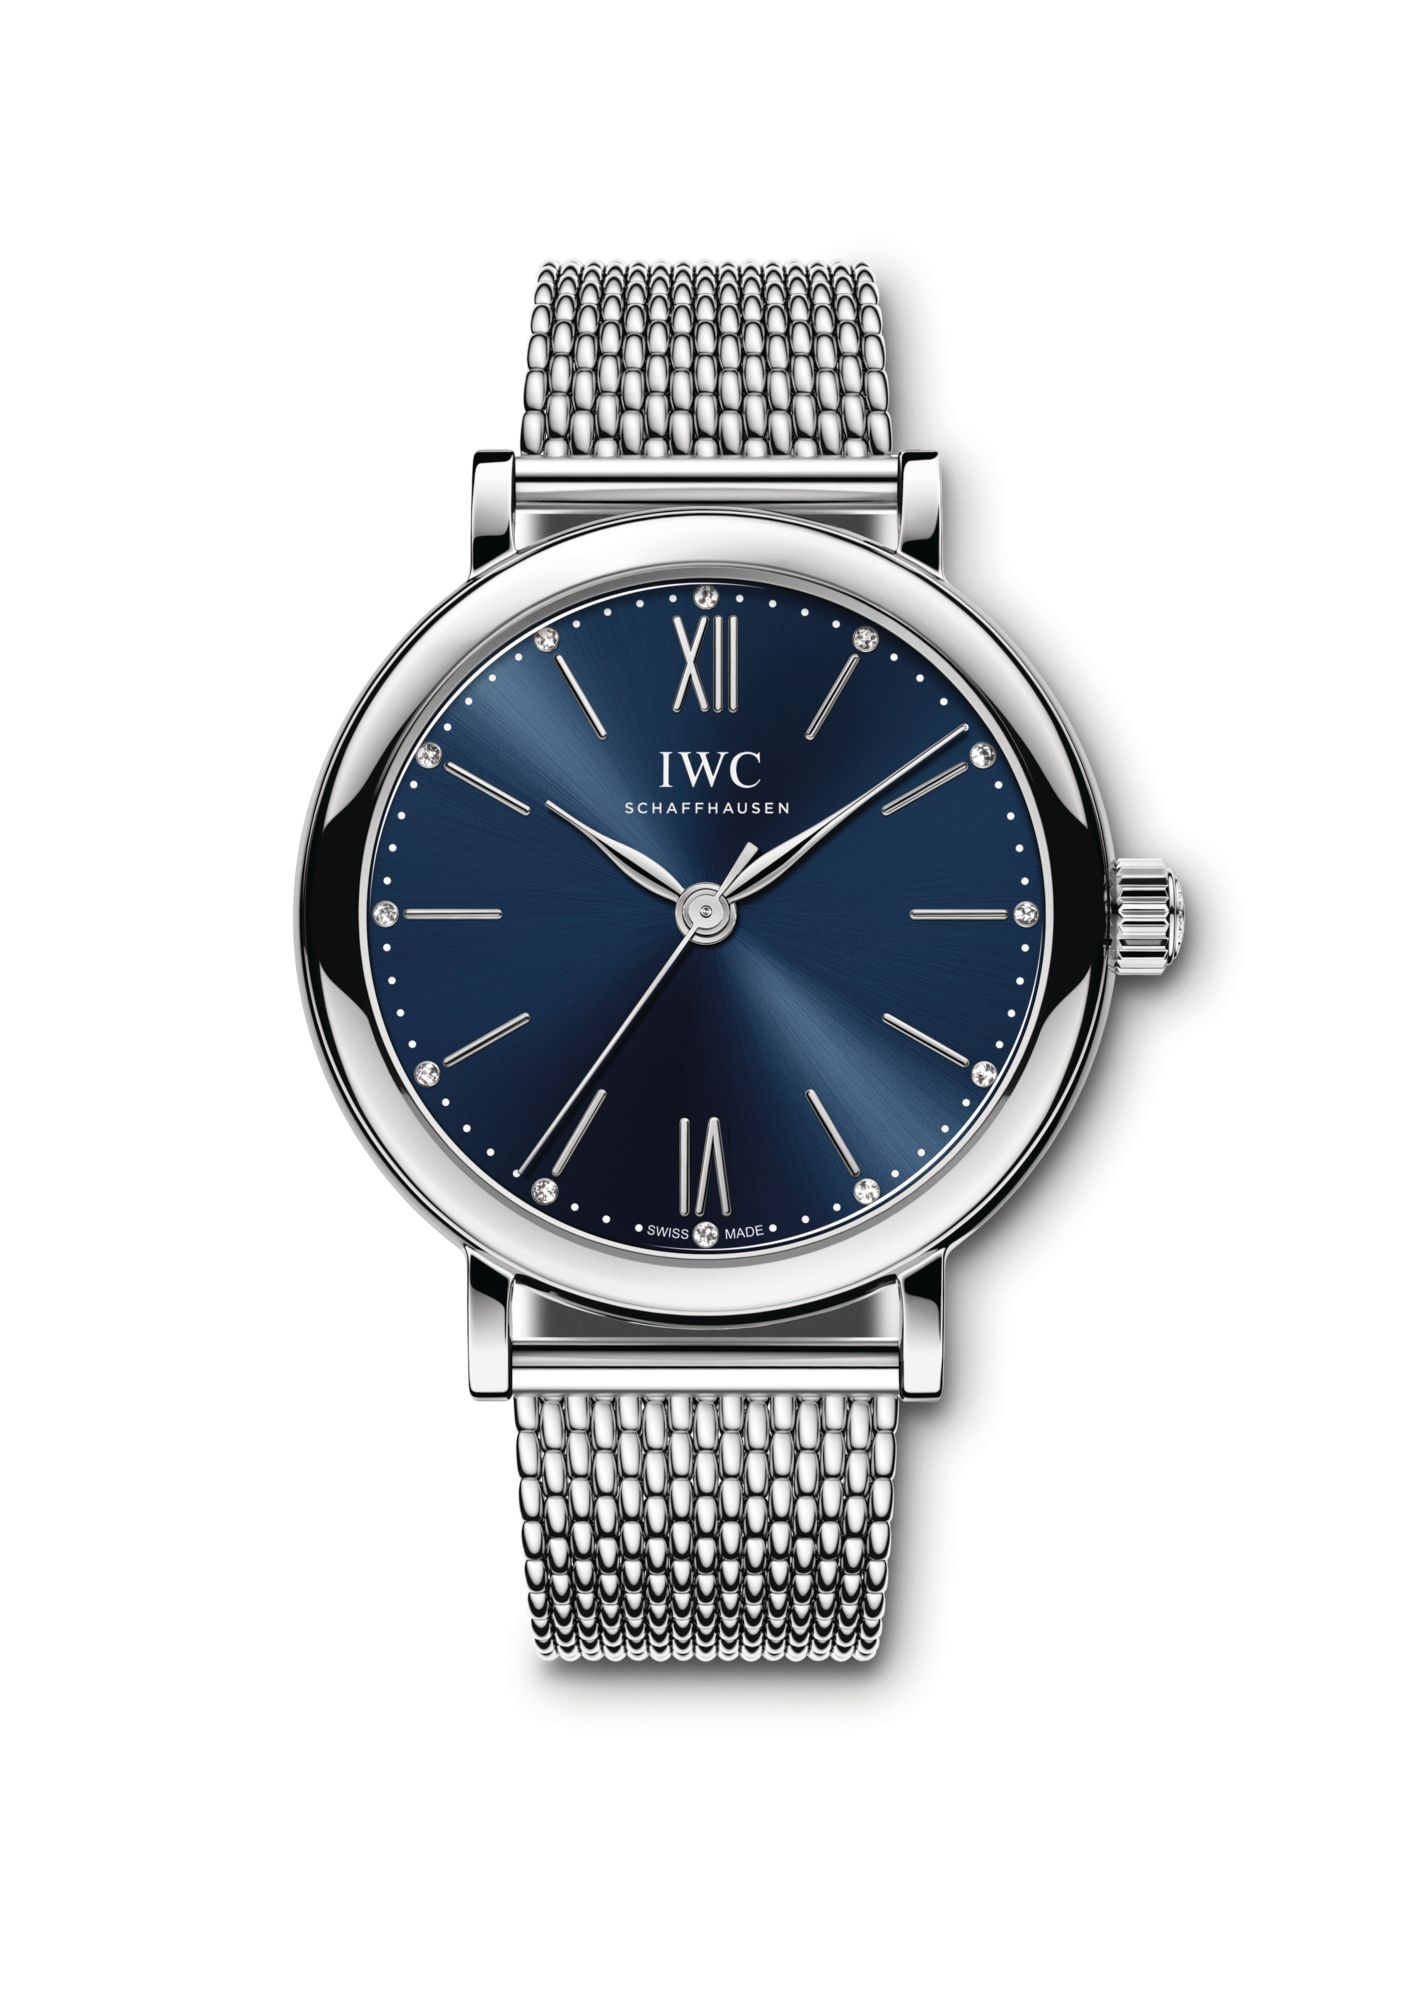 Portofino Automatic by IWC Schaffhausen (Photo: Courtesy of IWC Shaffhausen)